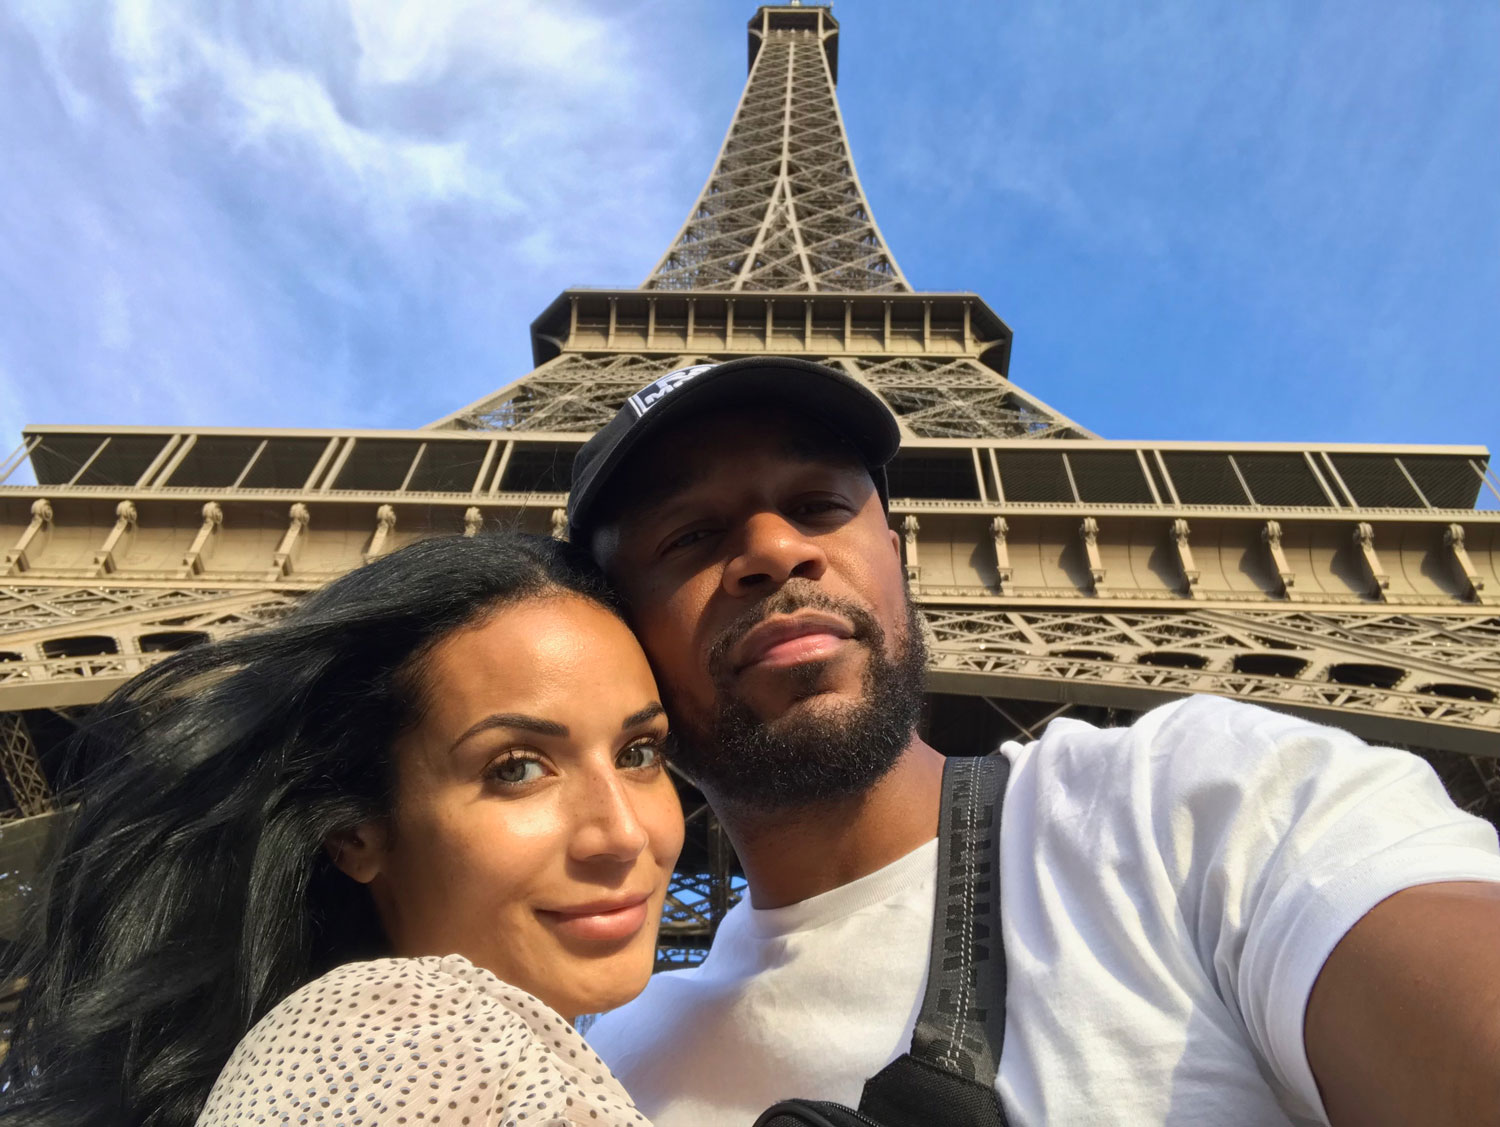 Zena Foster and Durrell Tank Babbs in front of eiffel tower paris france honeymoon